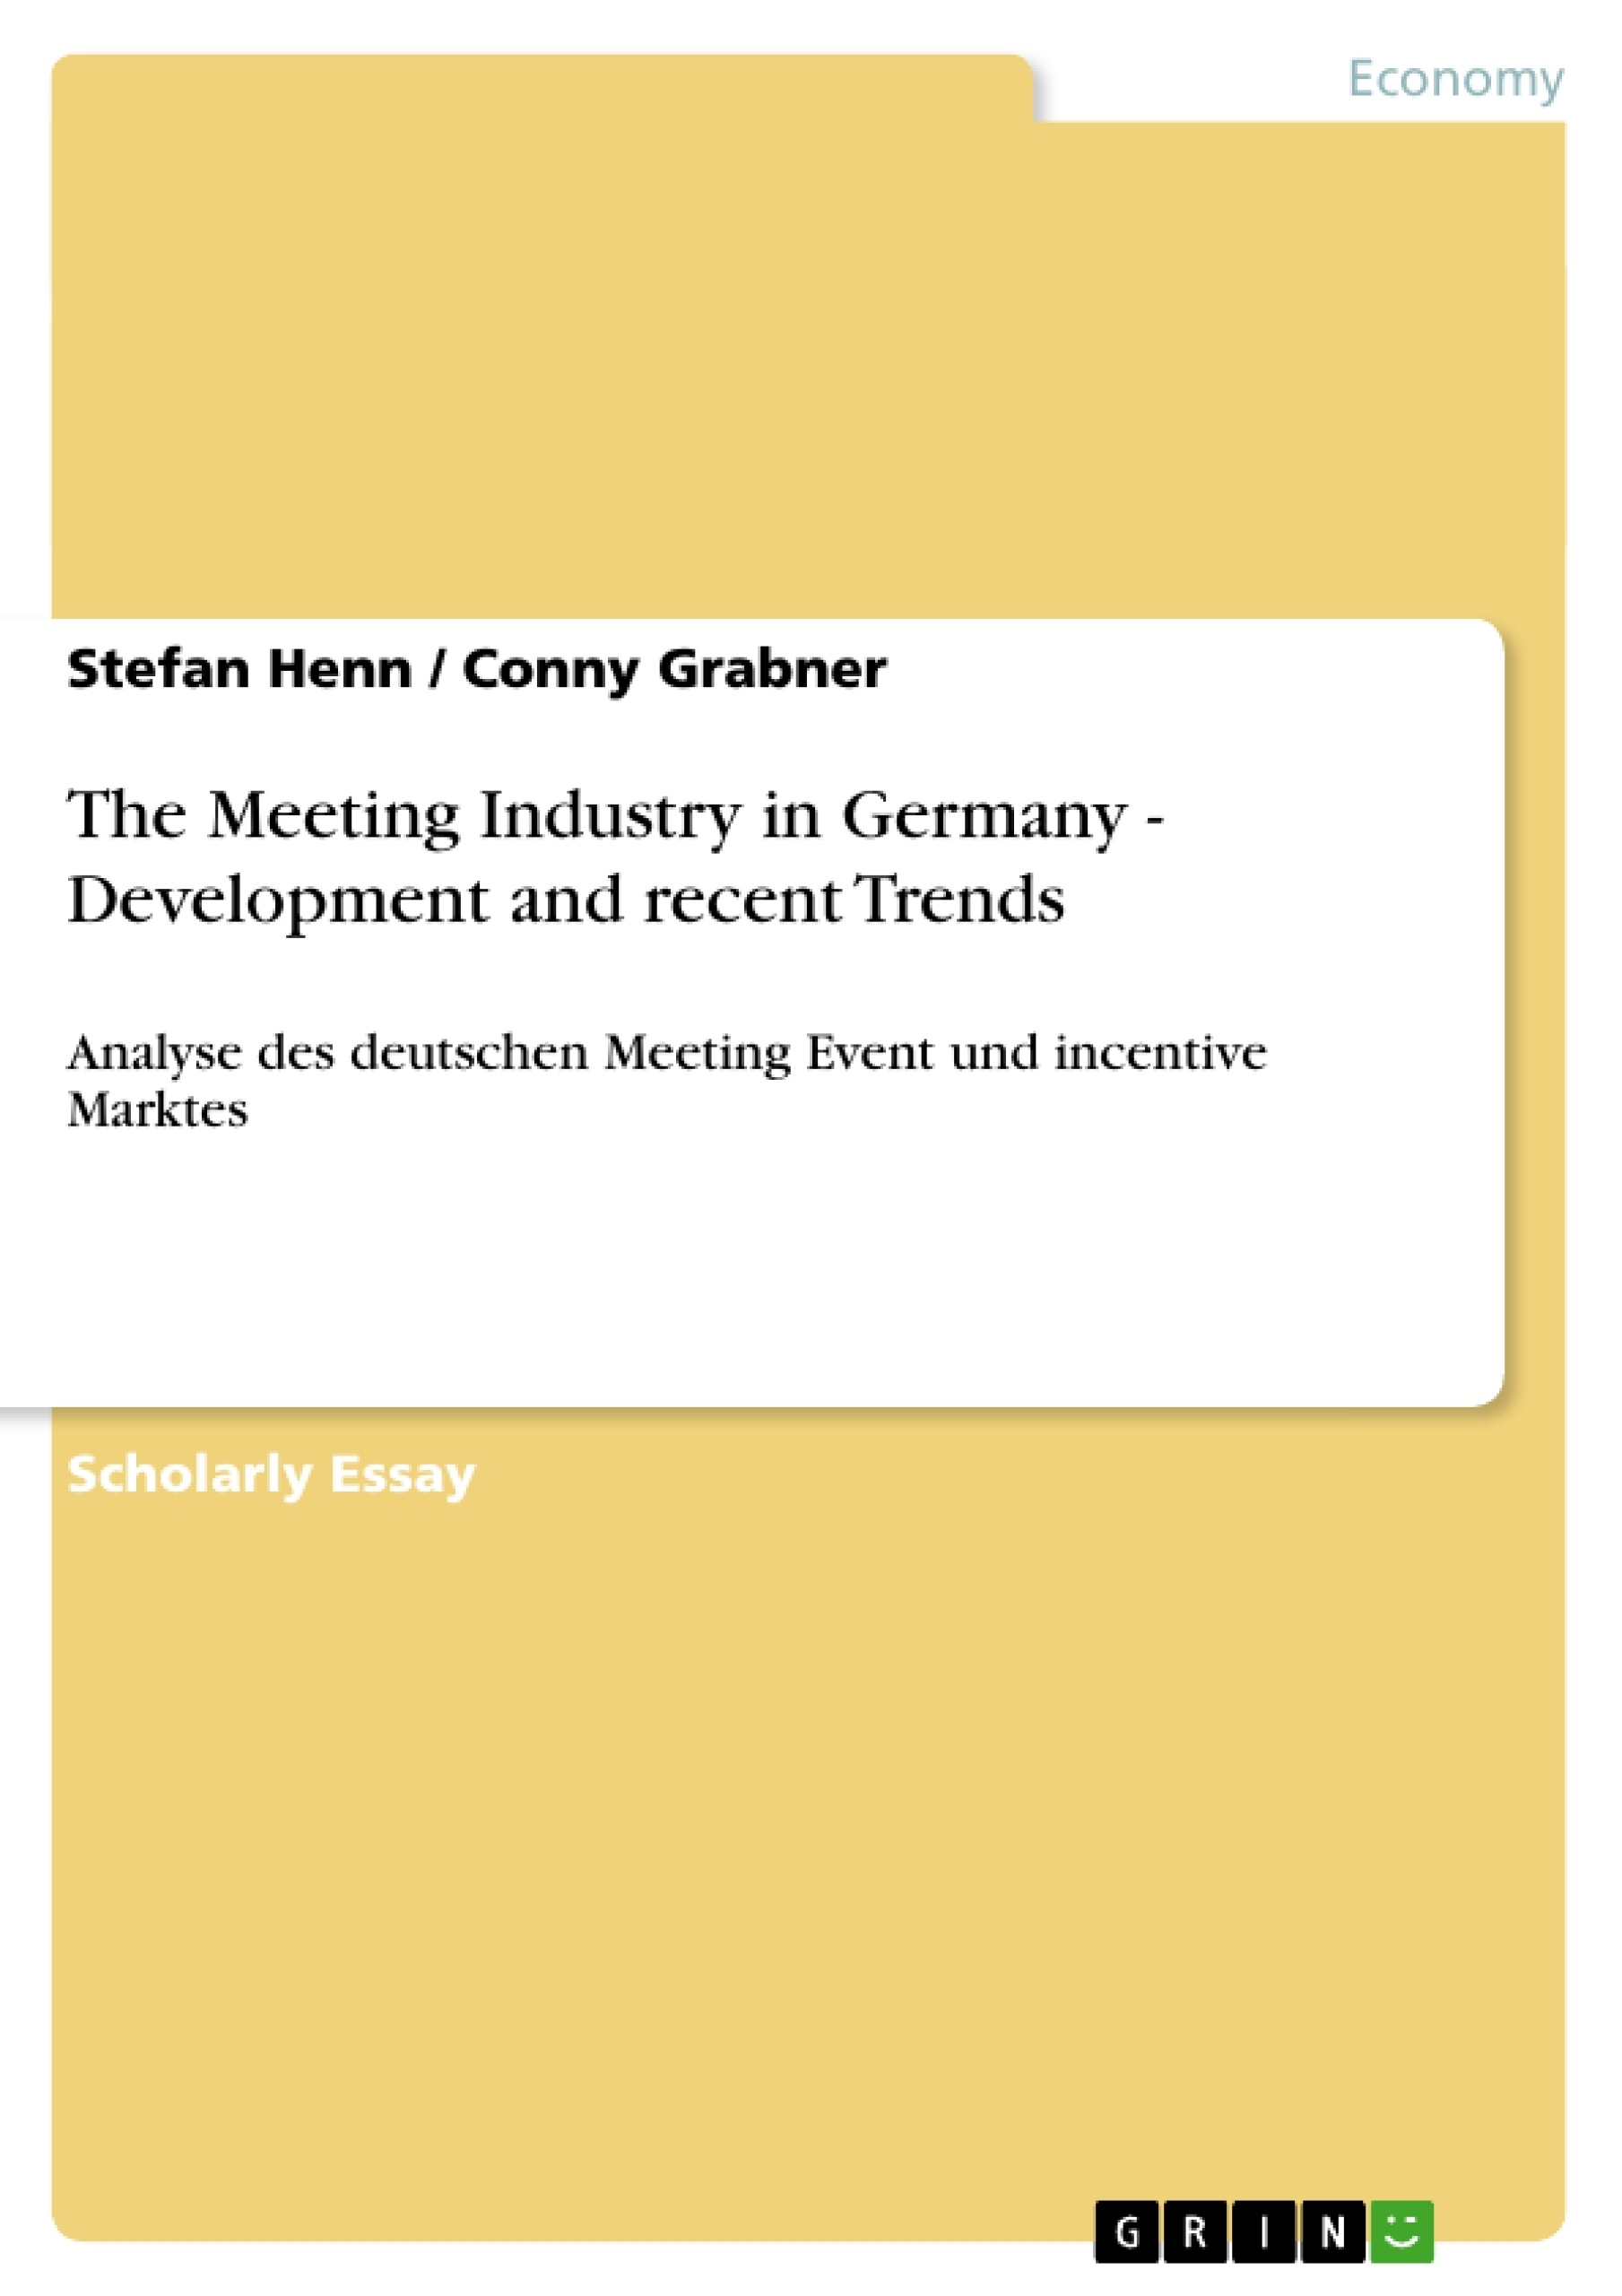 Title: The Meeting Industry in Germany - Development and recent Trends